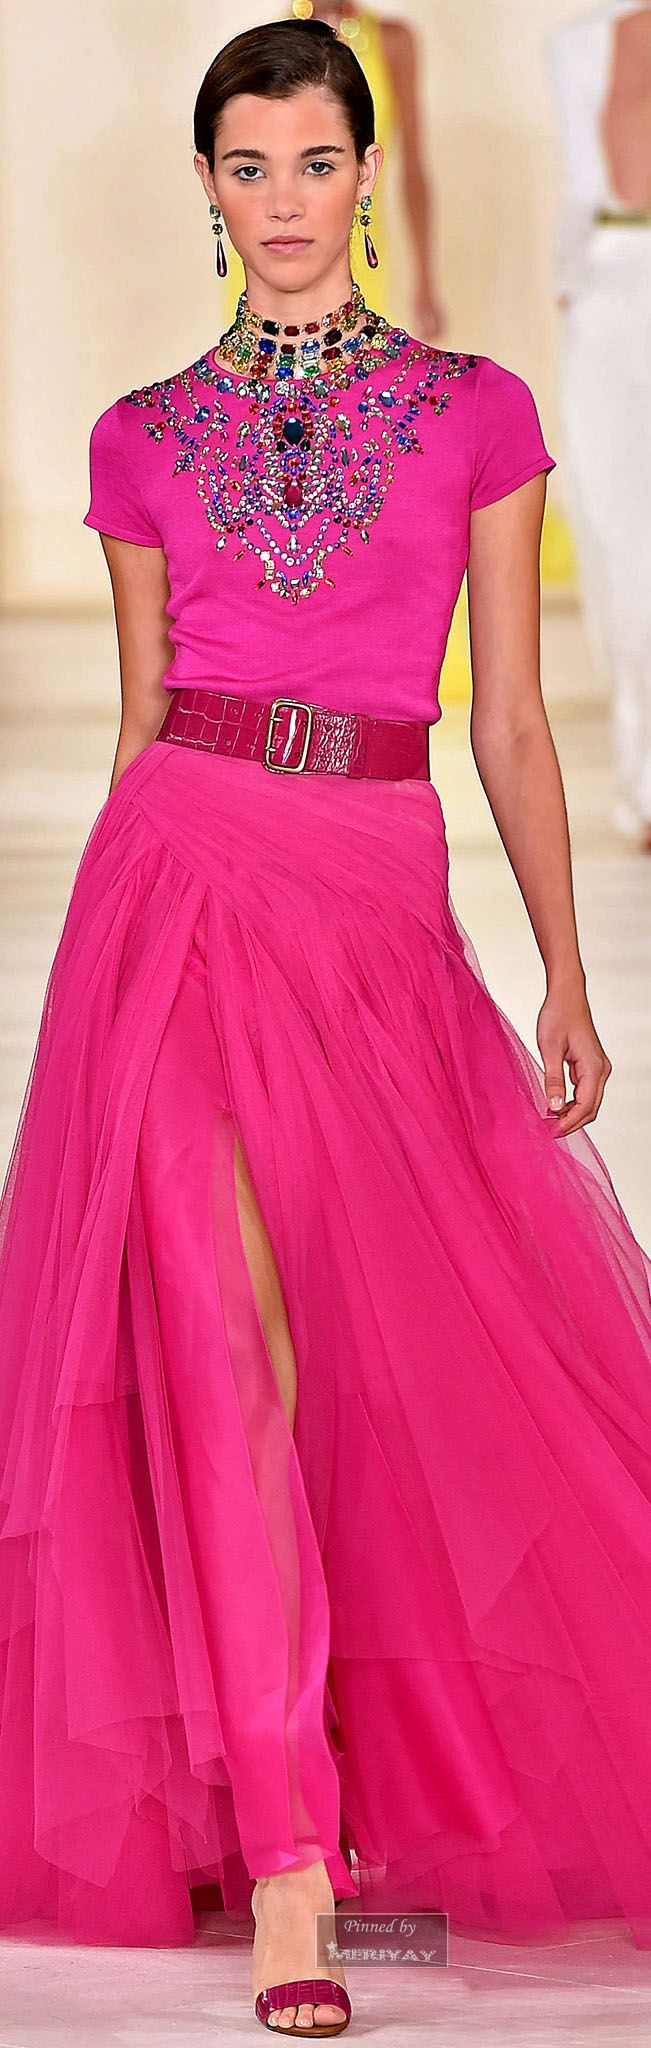 Ralph Lauren Spring 2015 Ready-to-Wear Collection Runway Show | Moda ...